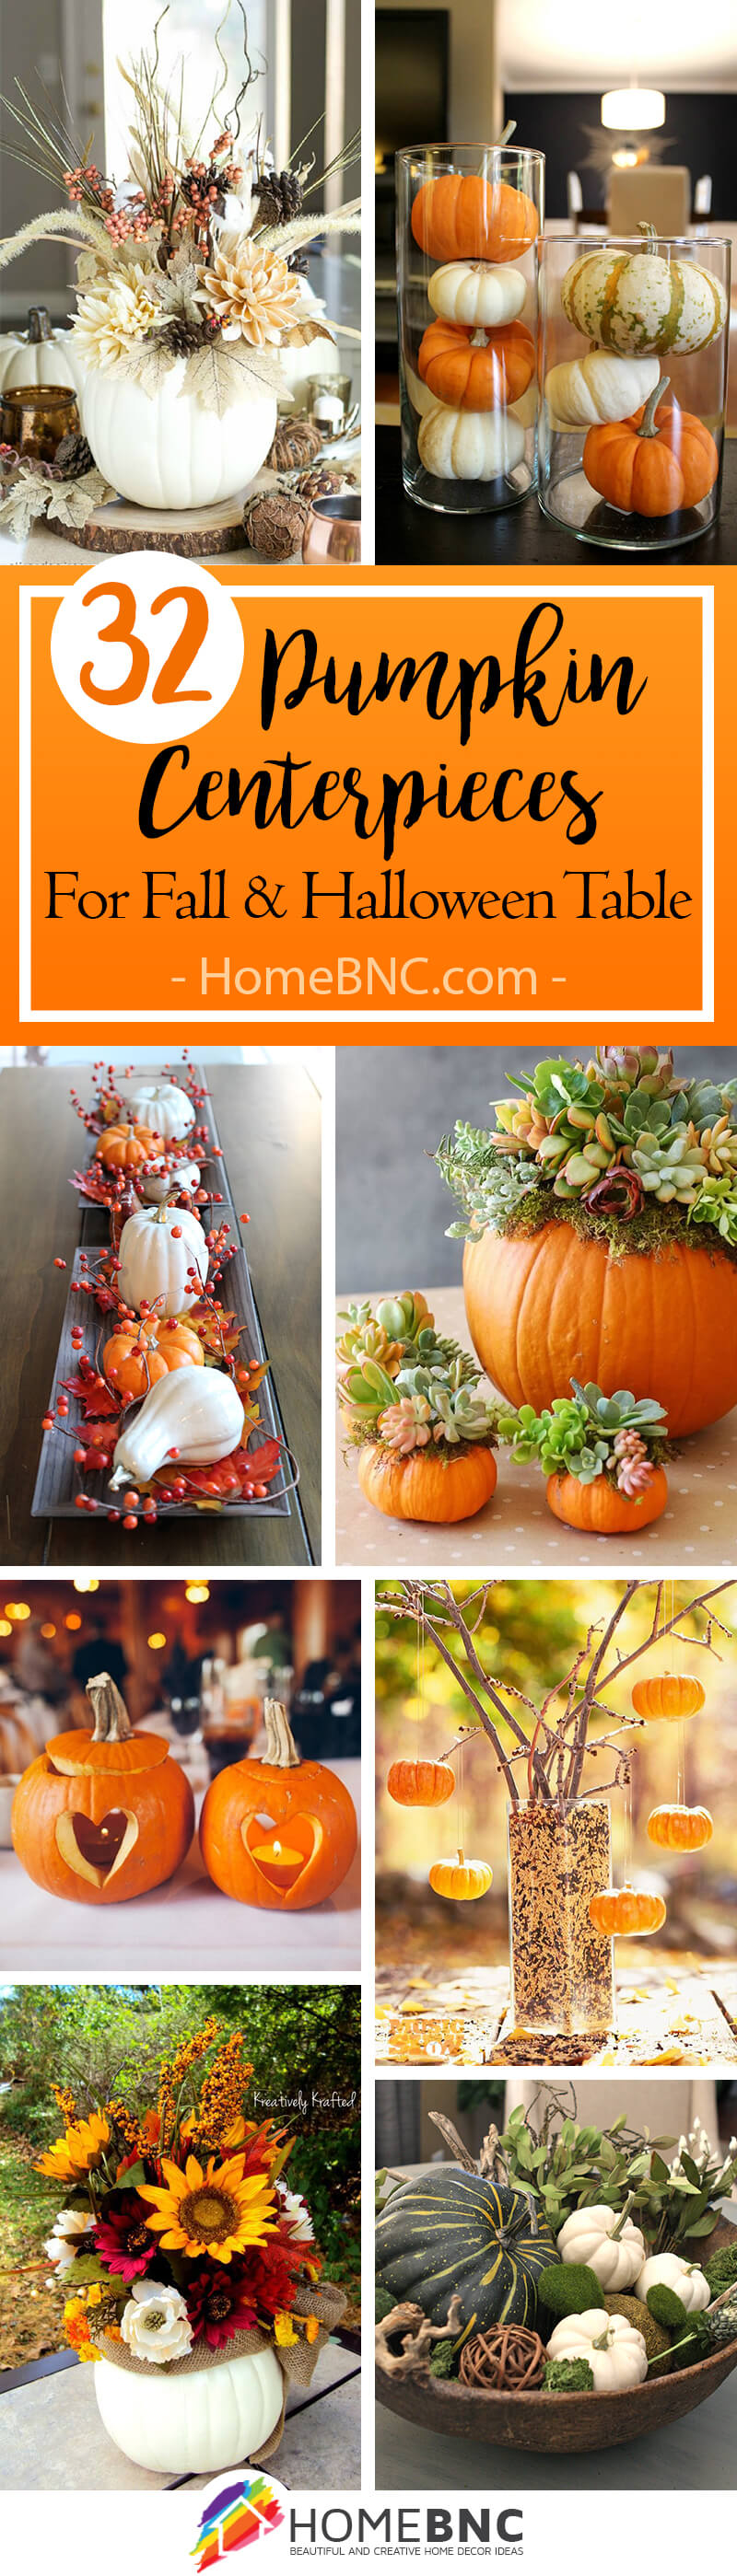 Pumpkin Centerpiece Decor Ideas